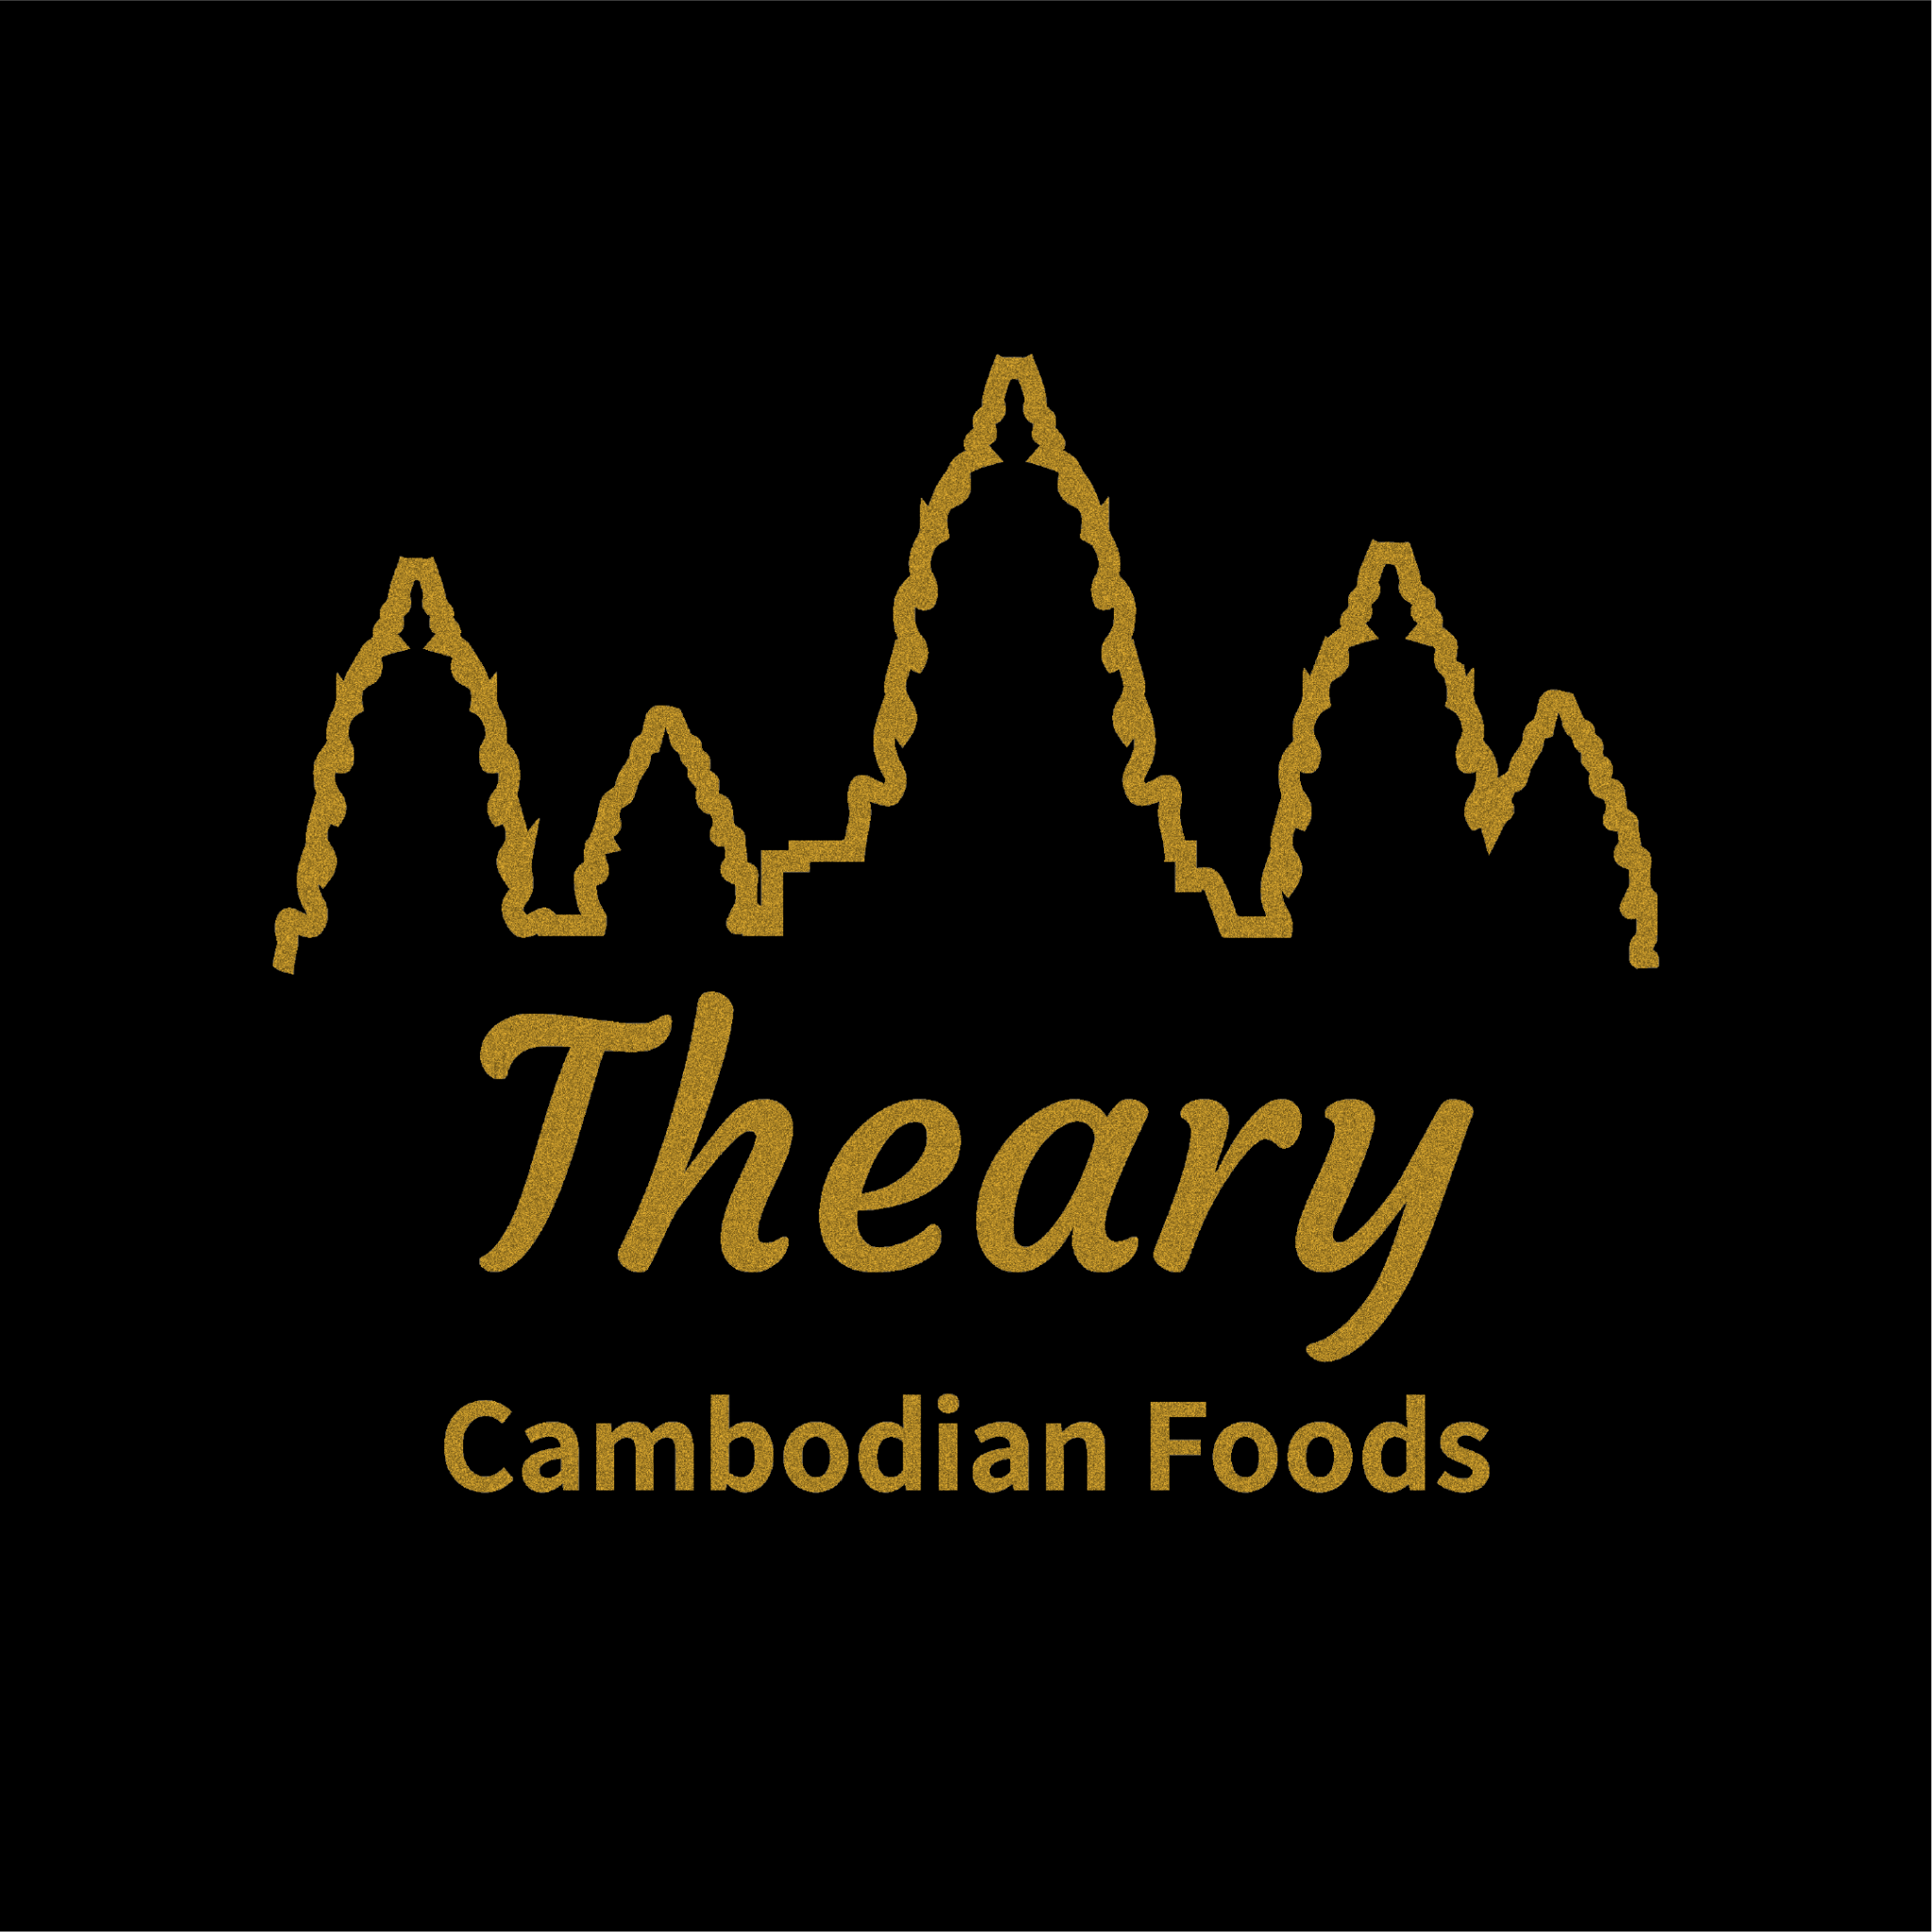 Theary Cambodian Foods Logo 2048x2048